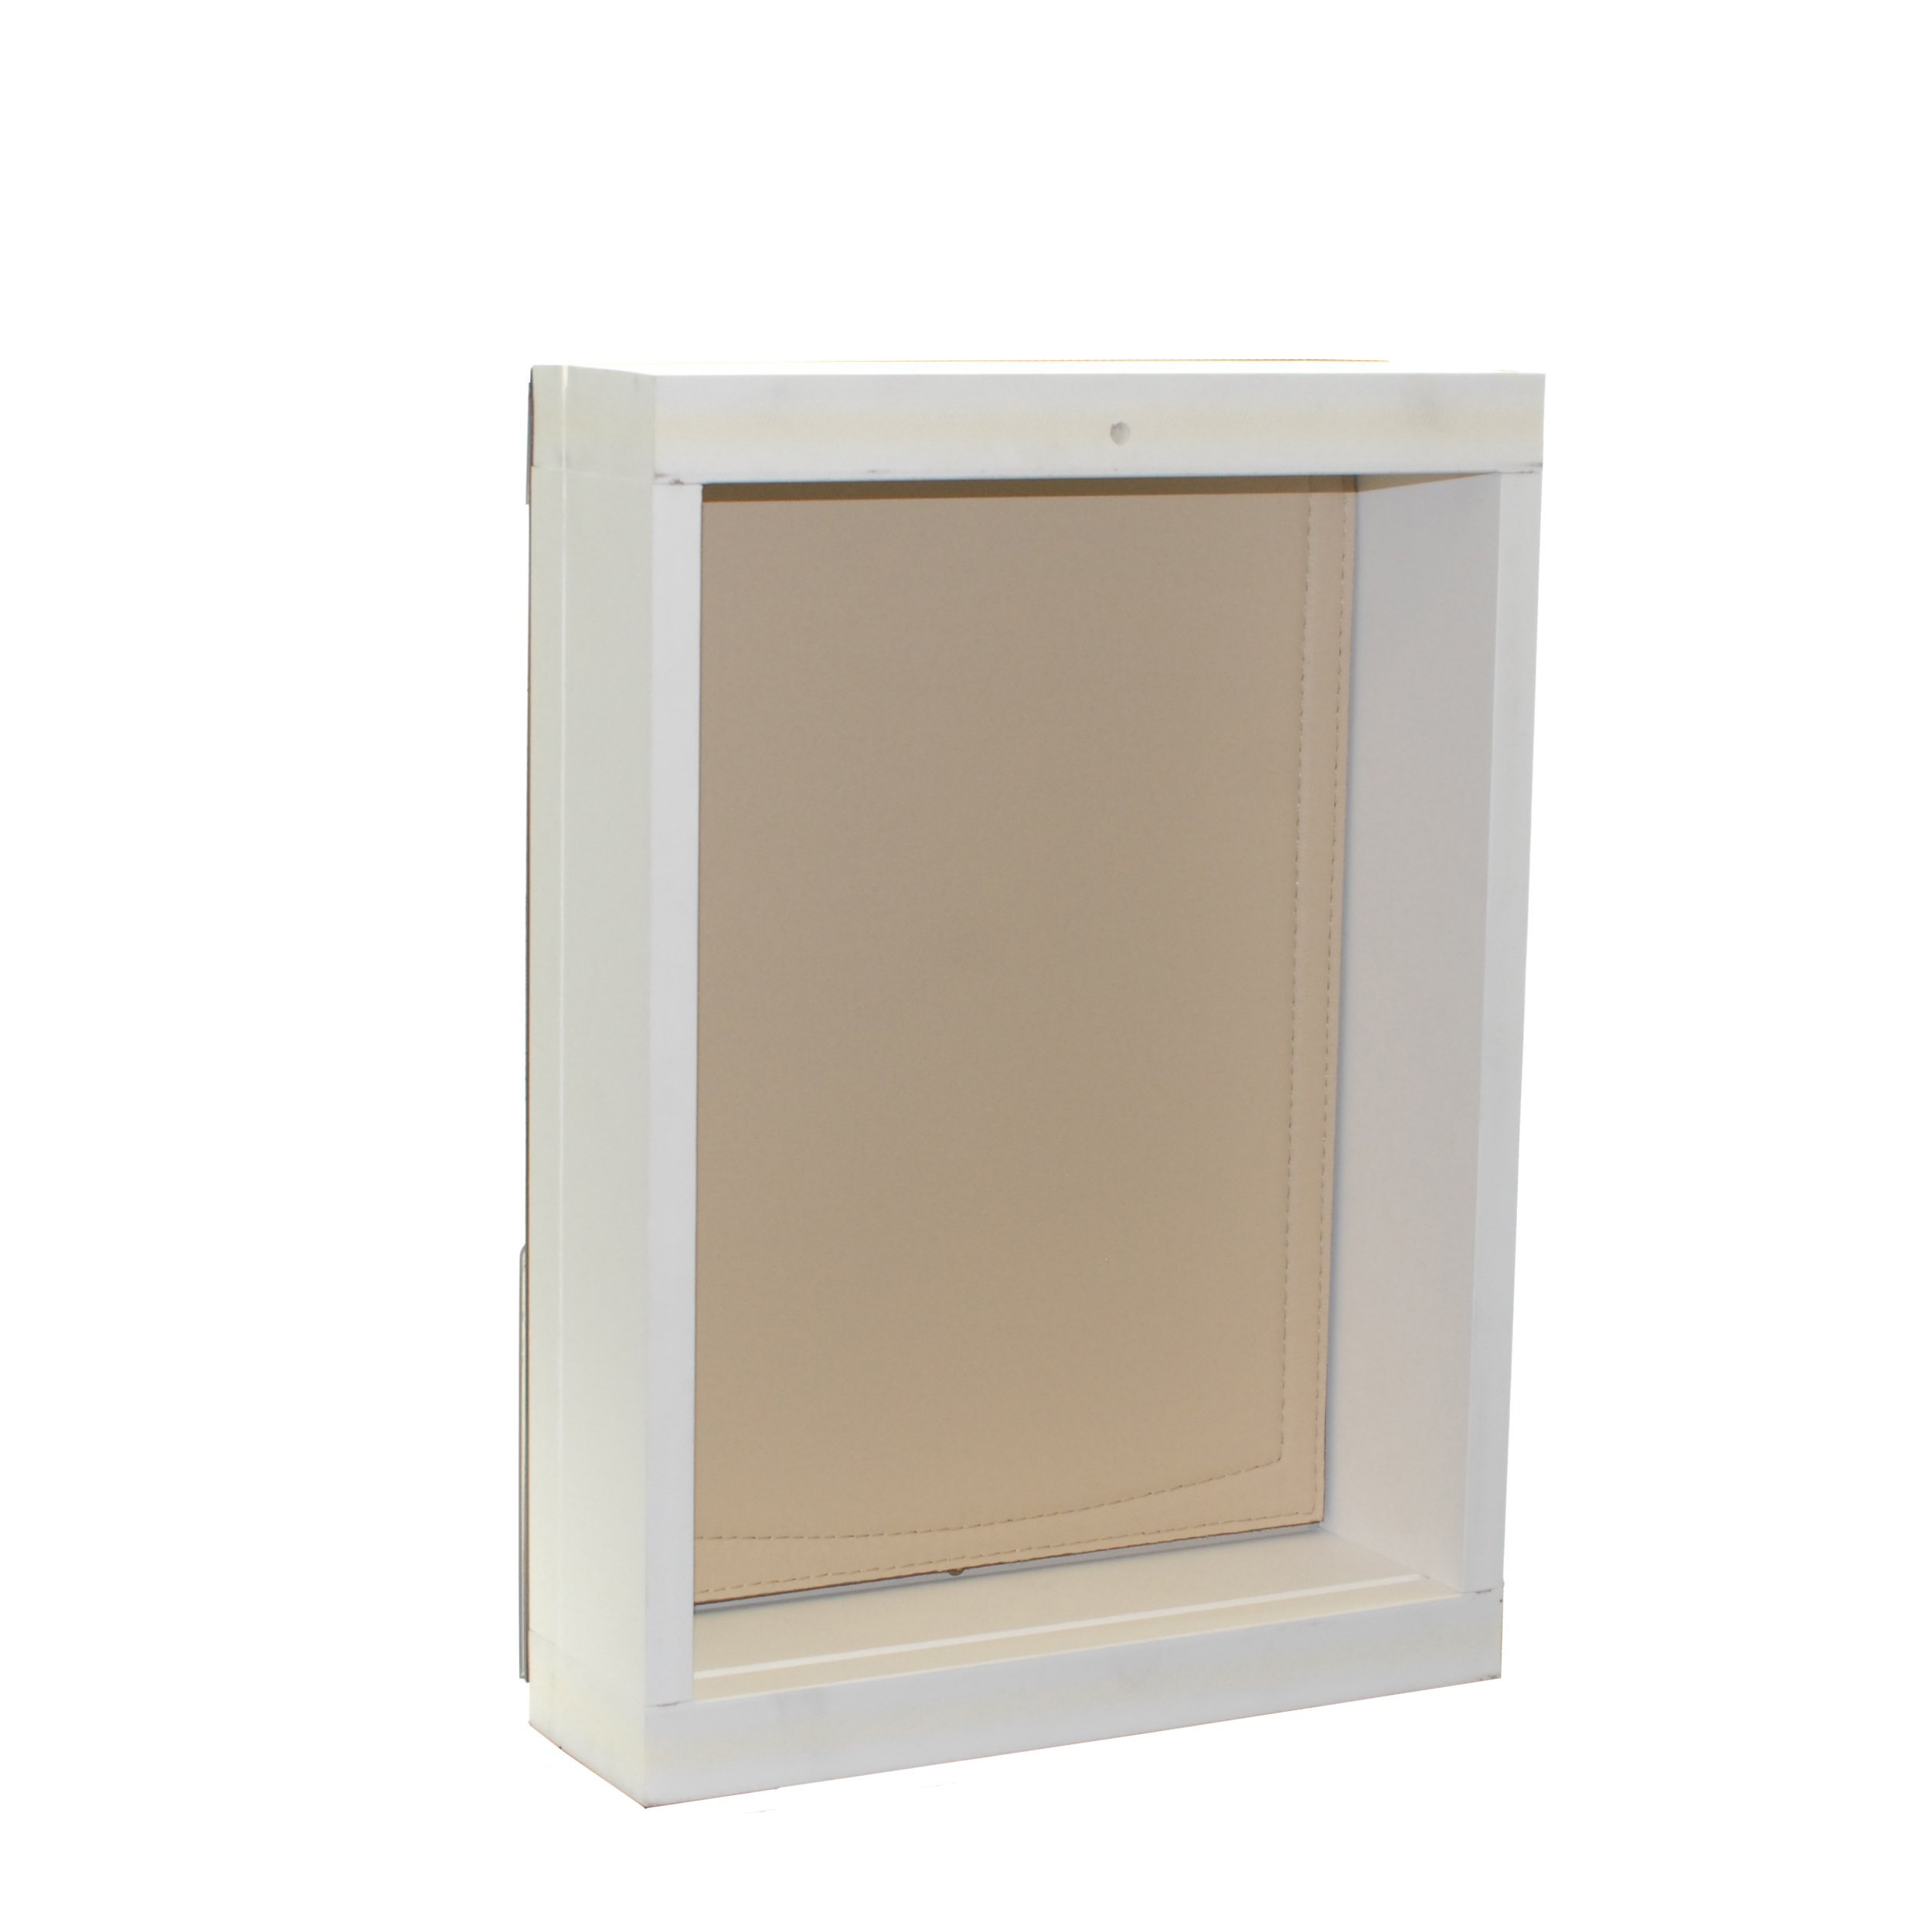 Freedom Pet Pass Wall-Mounted Energy-Efficient, Extreme Weather Dog Door with Insulated Flap - M